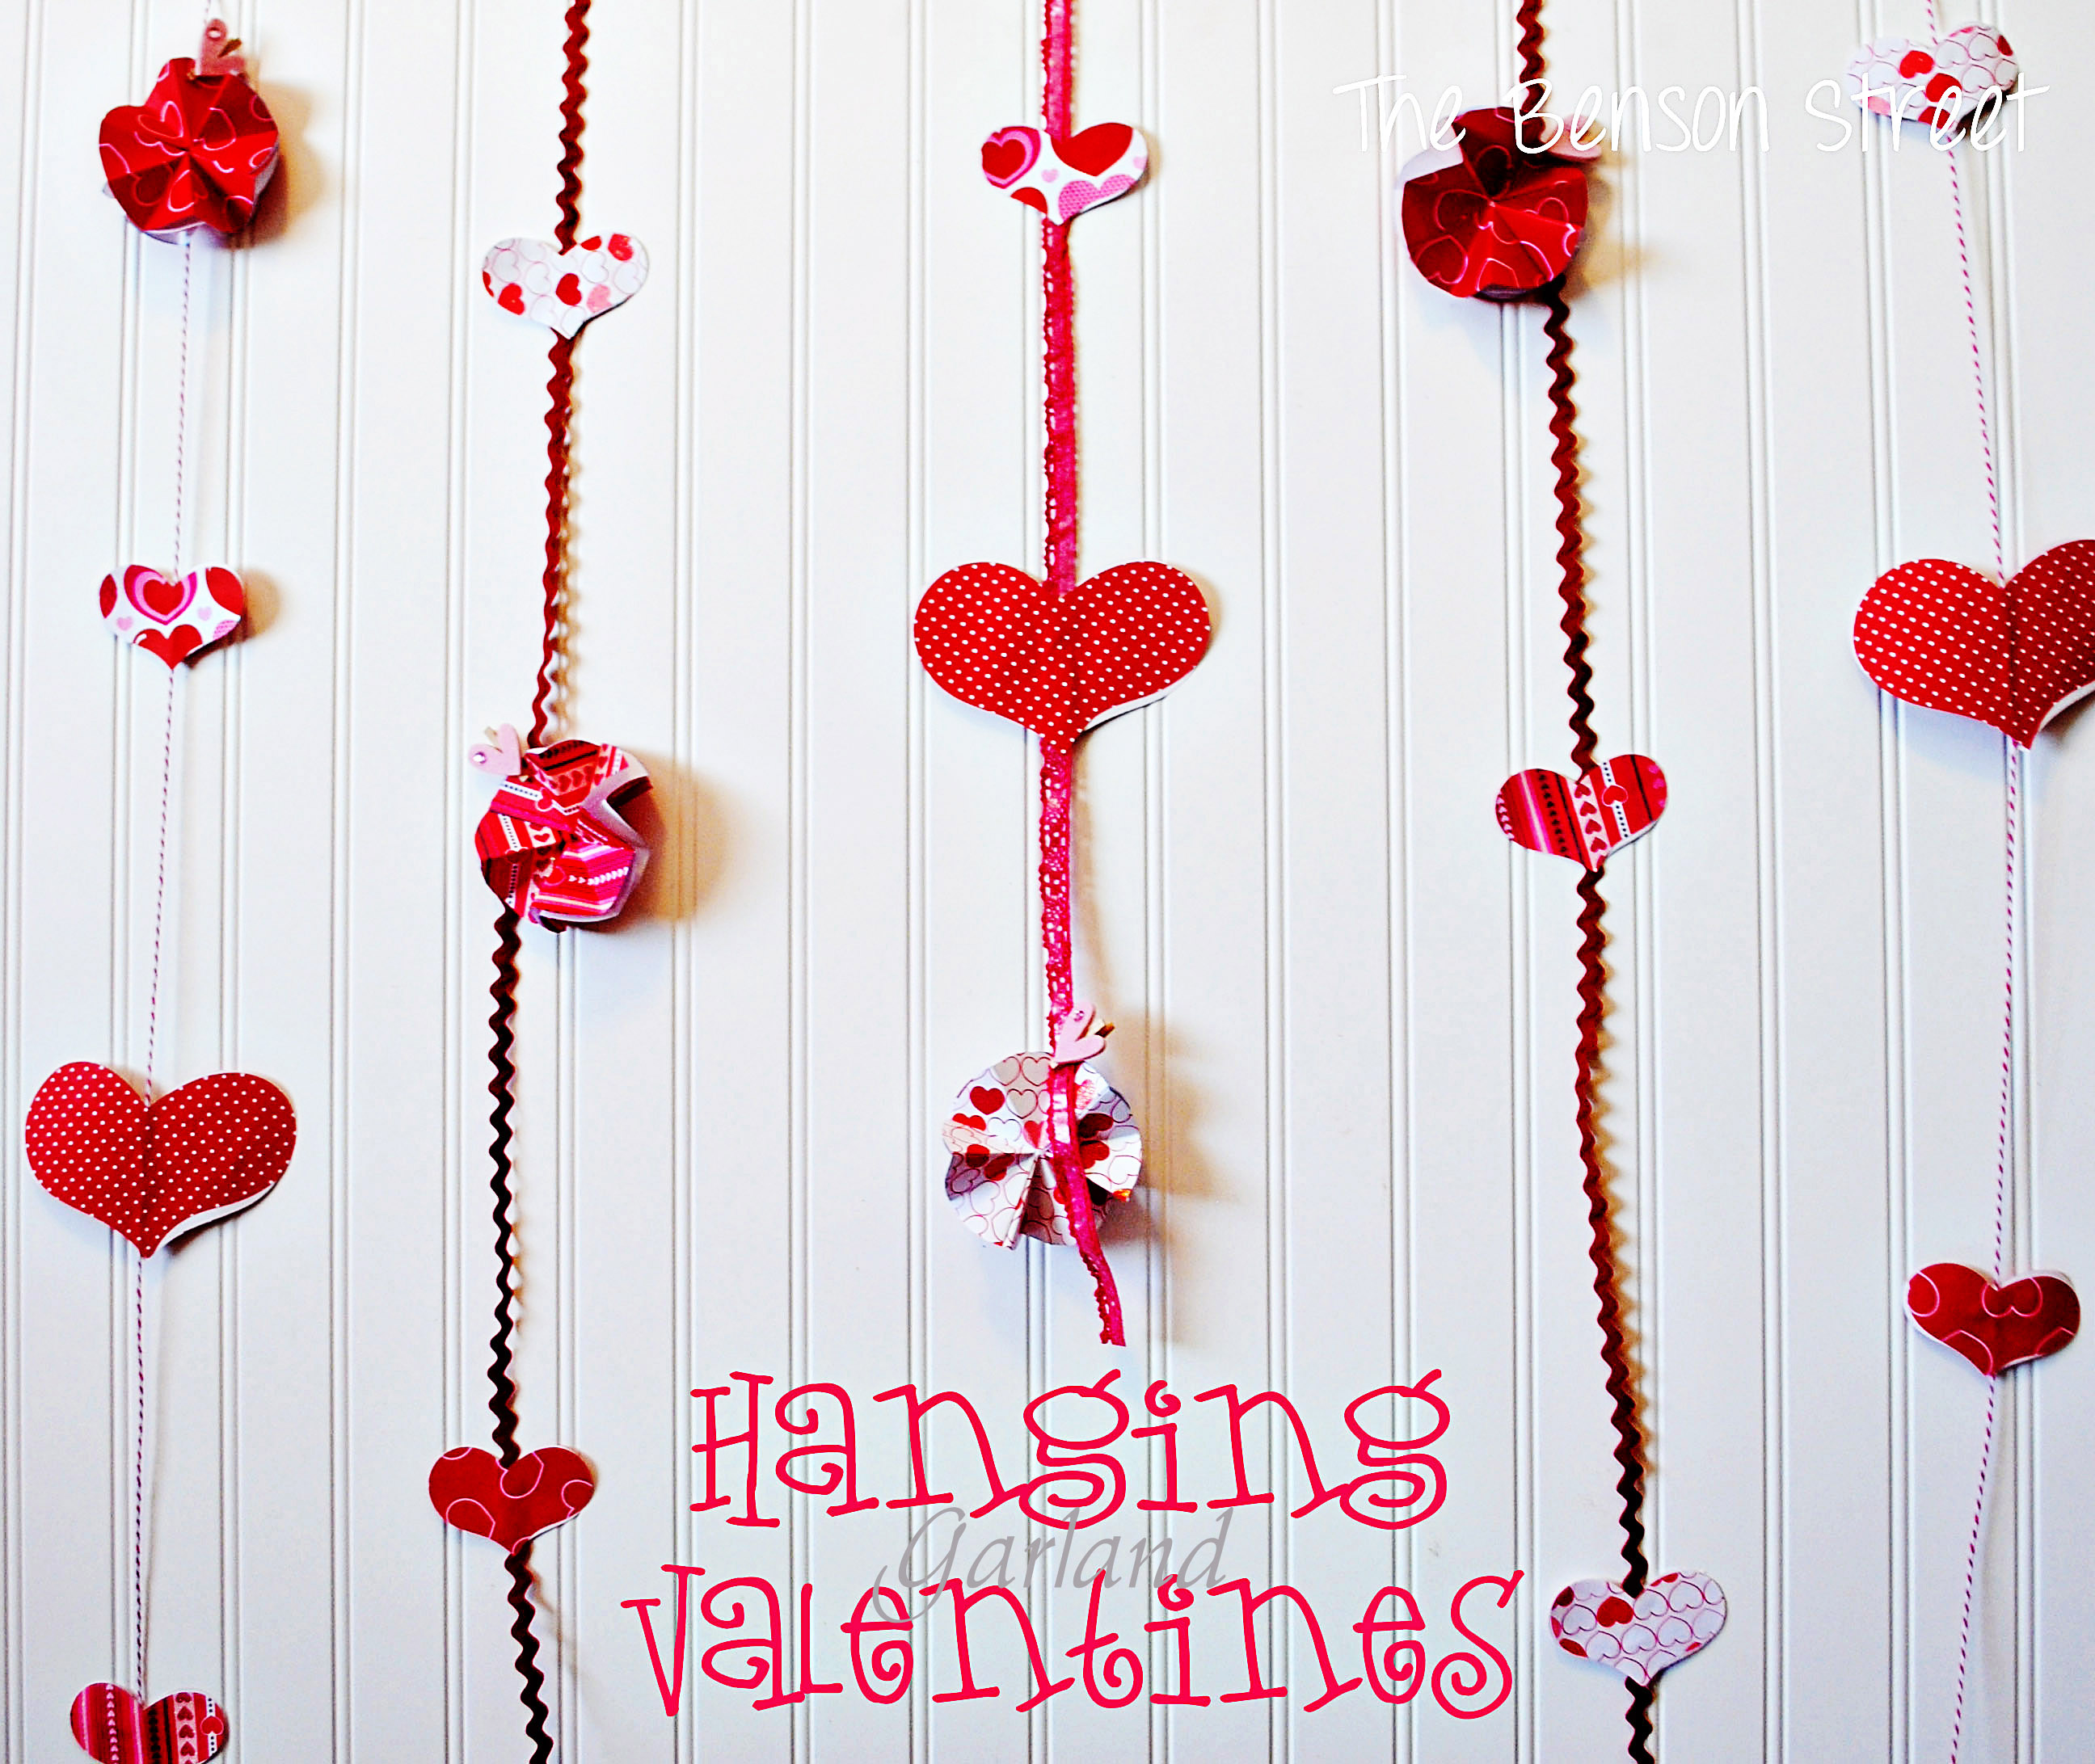 Valentine home decorations architecture design for Valentine decorations to make at home